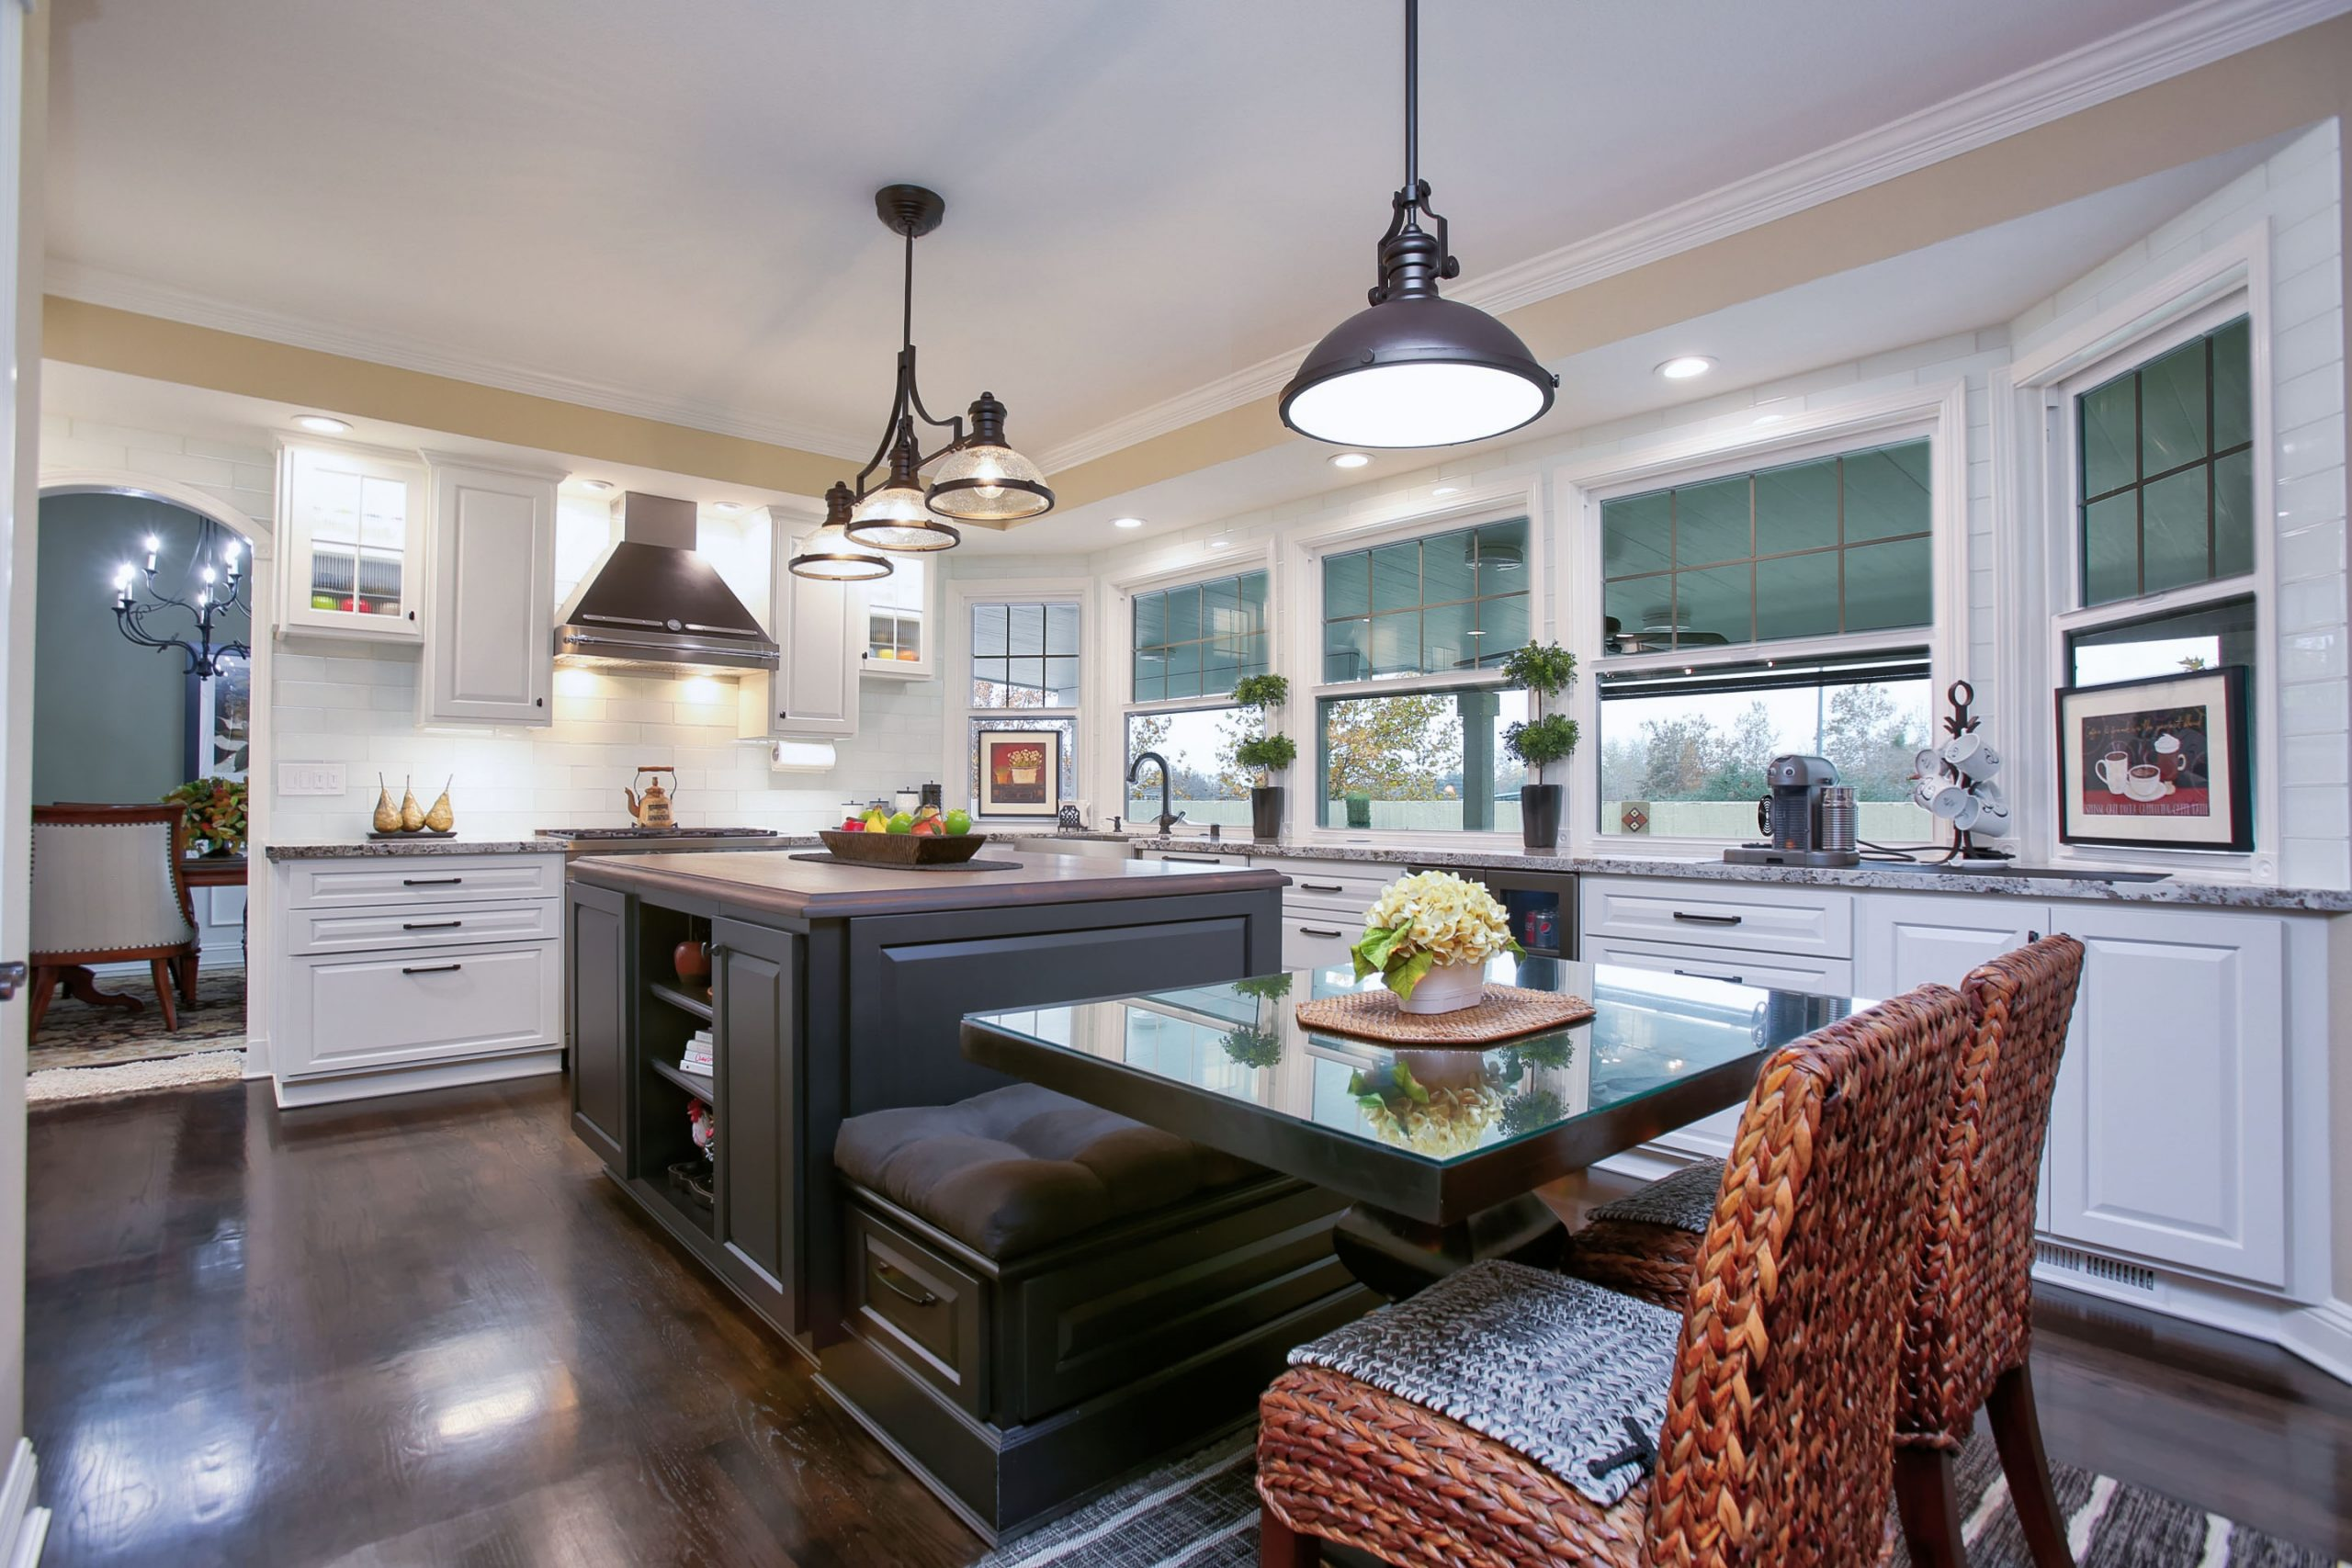 Project Spotlight – Banquet Makes for Perfect Kitchen